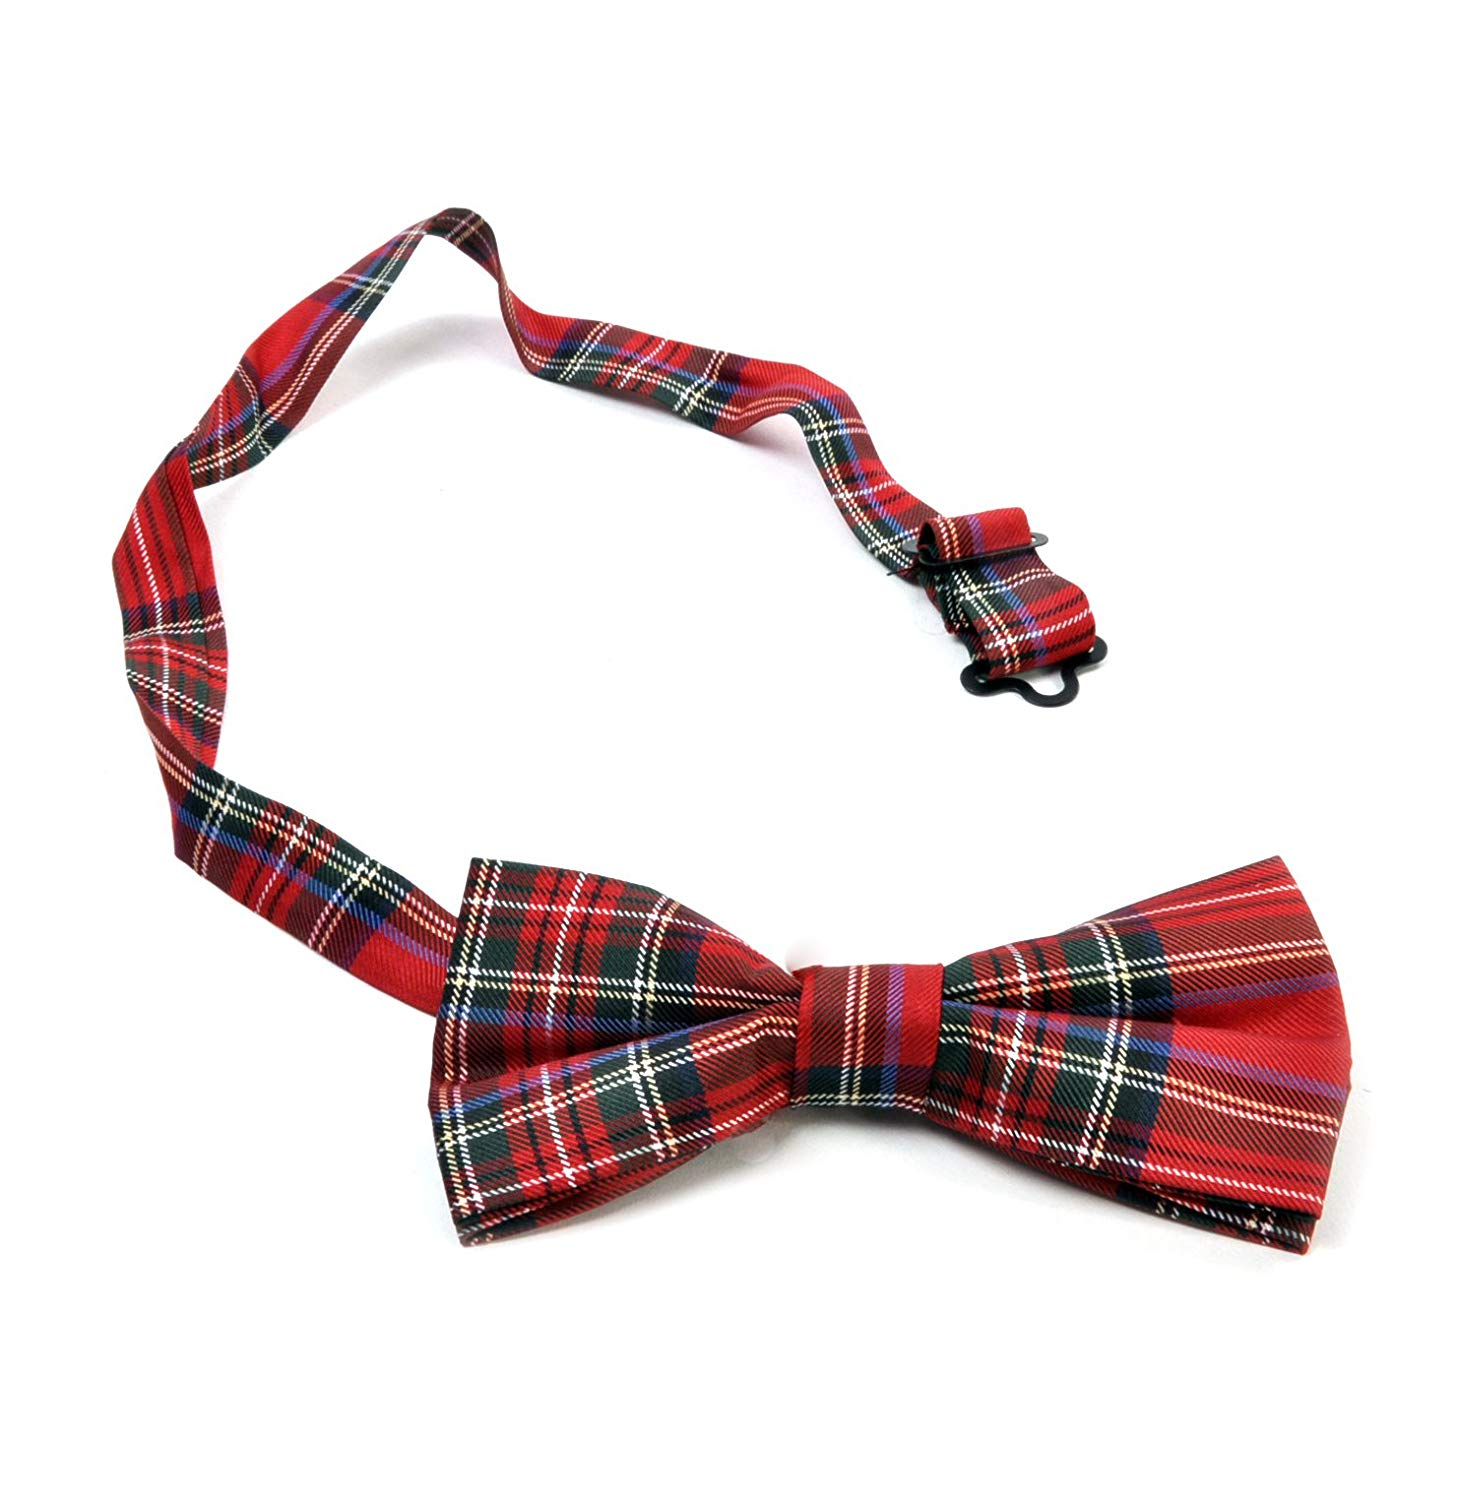 BIG RIBBON TARTAN STEWART SCOTTISH PLAID CHRISTMAS BOUTIQUE HAIR BOW CLIP GRIP